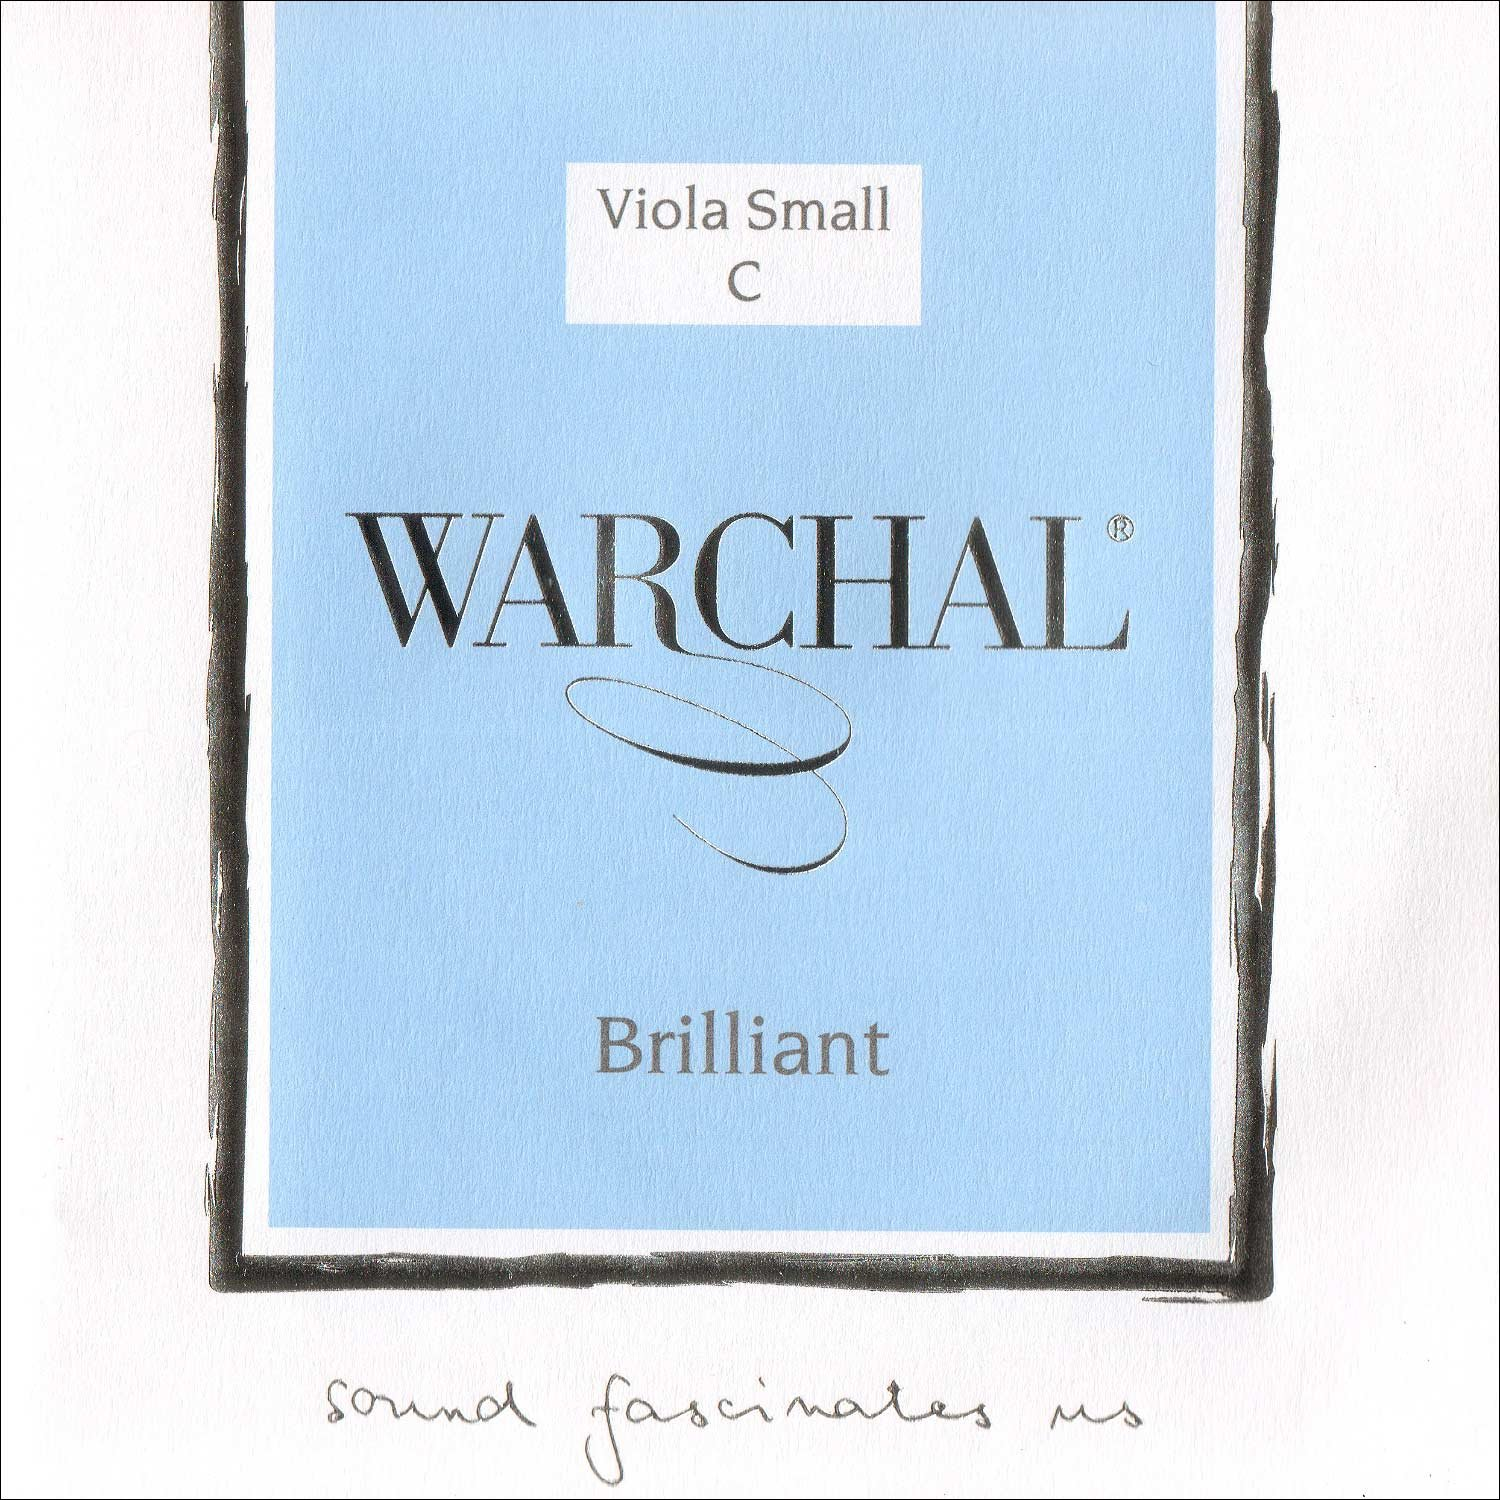 Warchal Brilliant 15-16 Viola C String - Silver Wound/Synthetic - Medium Gauge 4334277218